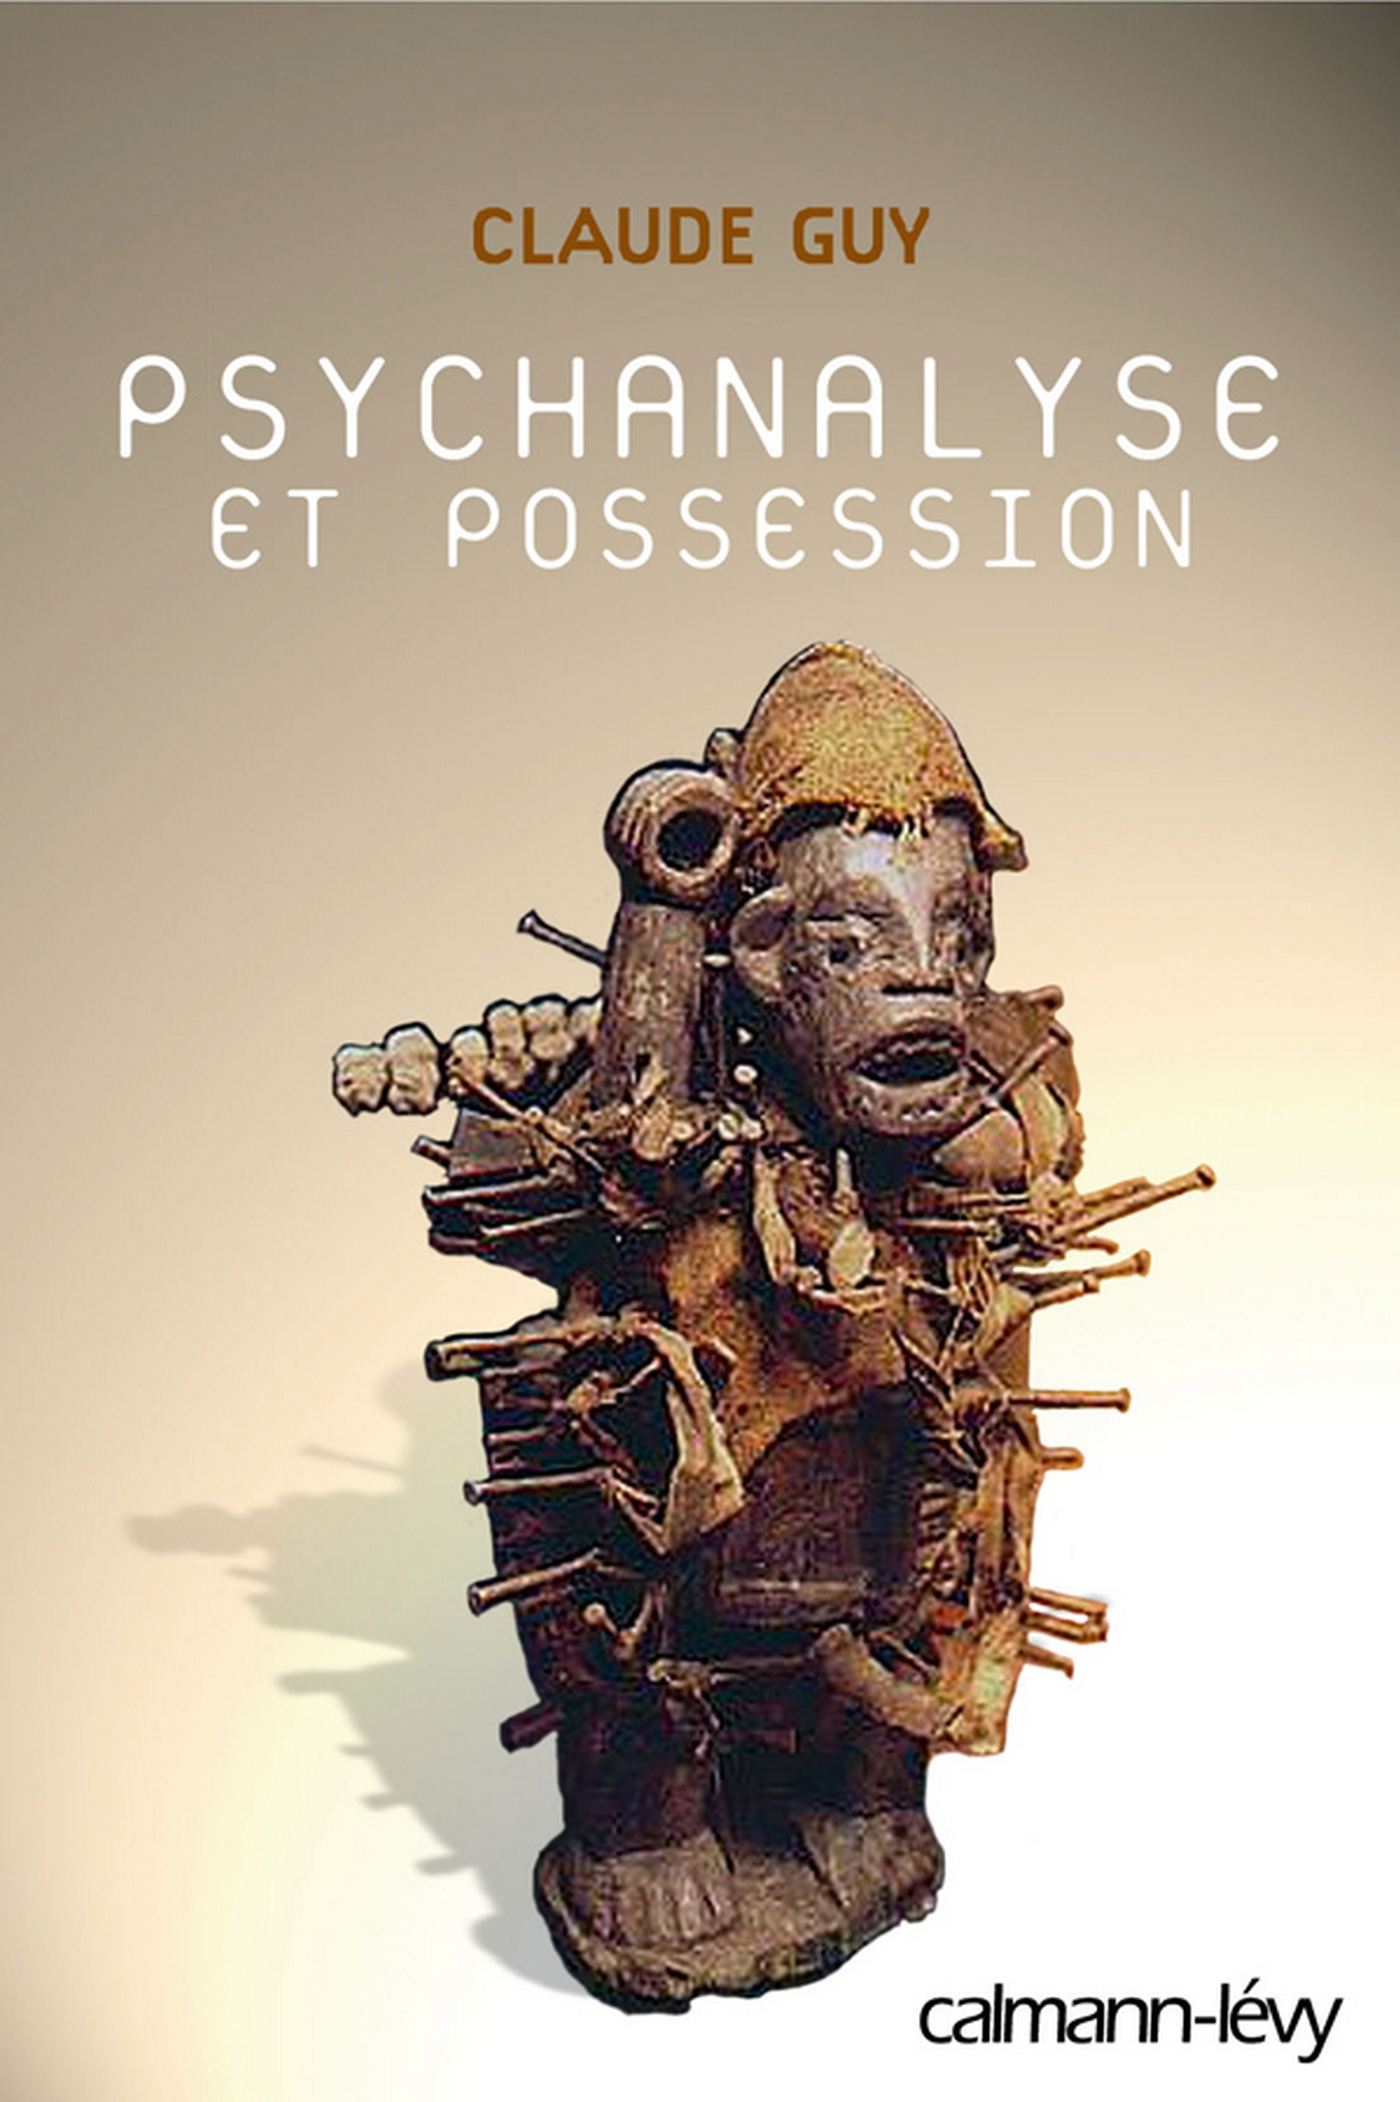 Psychanalyse et possession